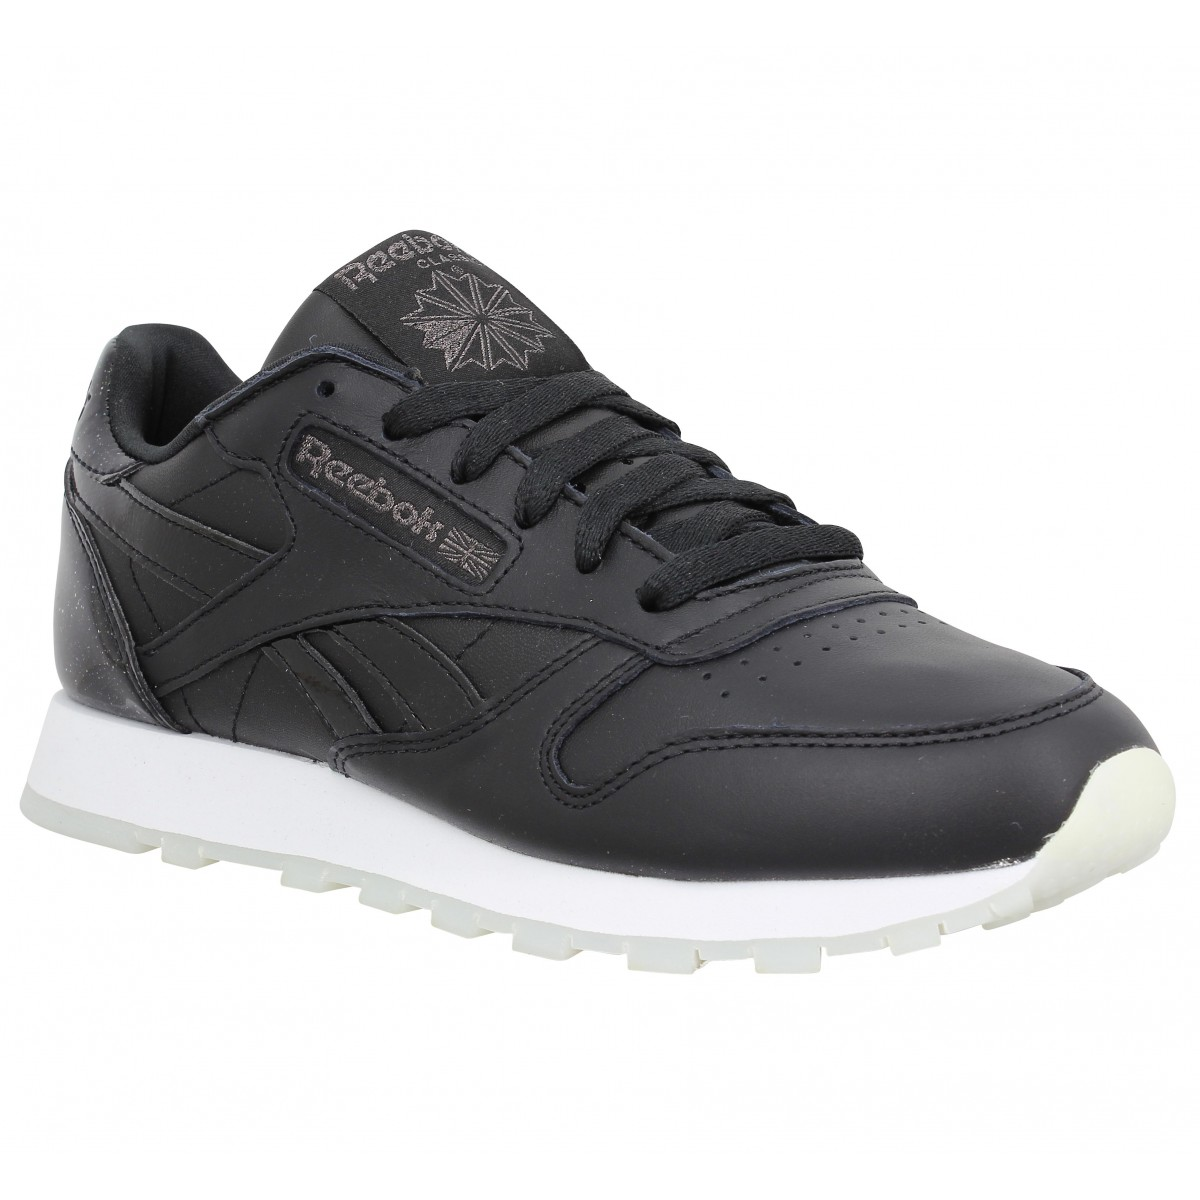 Baskets REEBOK Classic Leather cuir Femme Black Ice